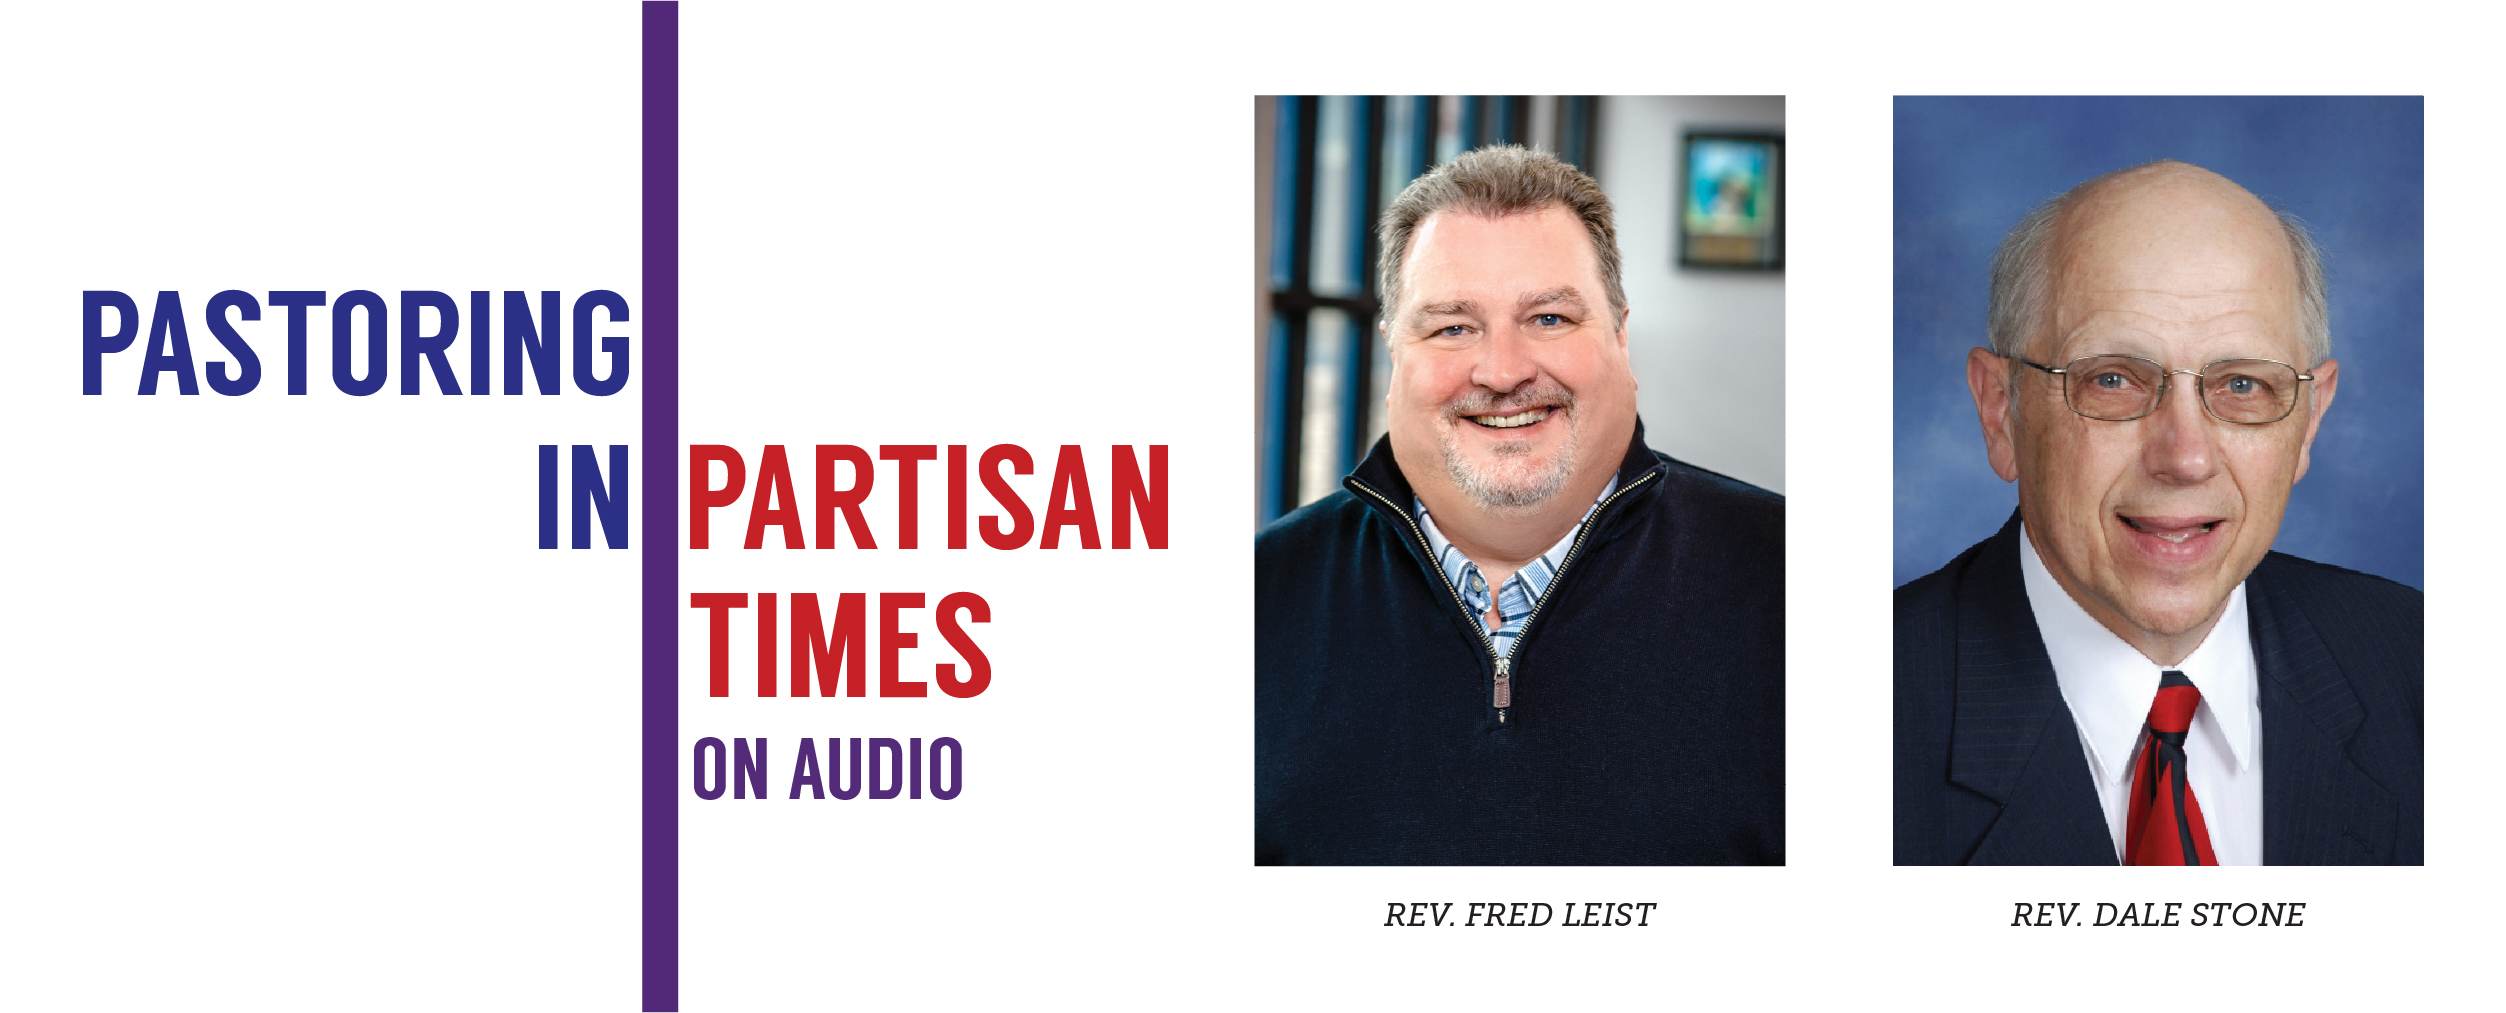 Pastoring in Partisan Times Podcast: Insights From Missouri Pastors with Revs. Fred Leist and Dale Stone